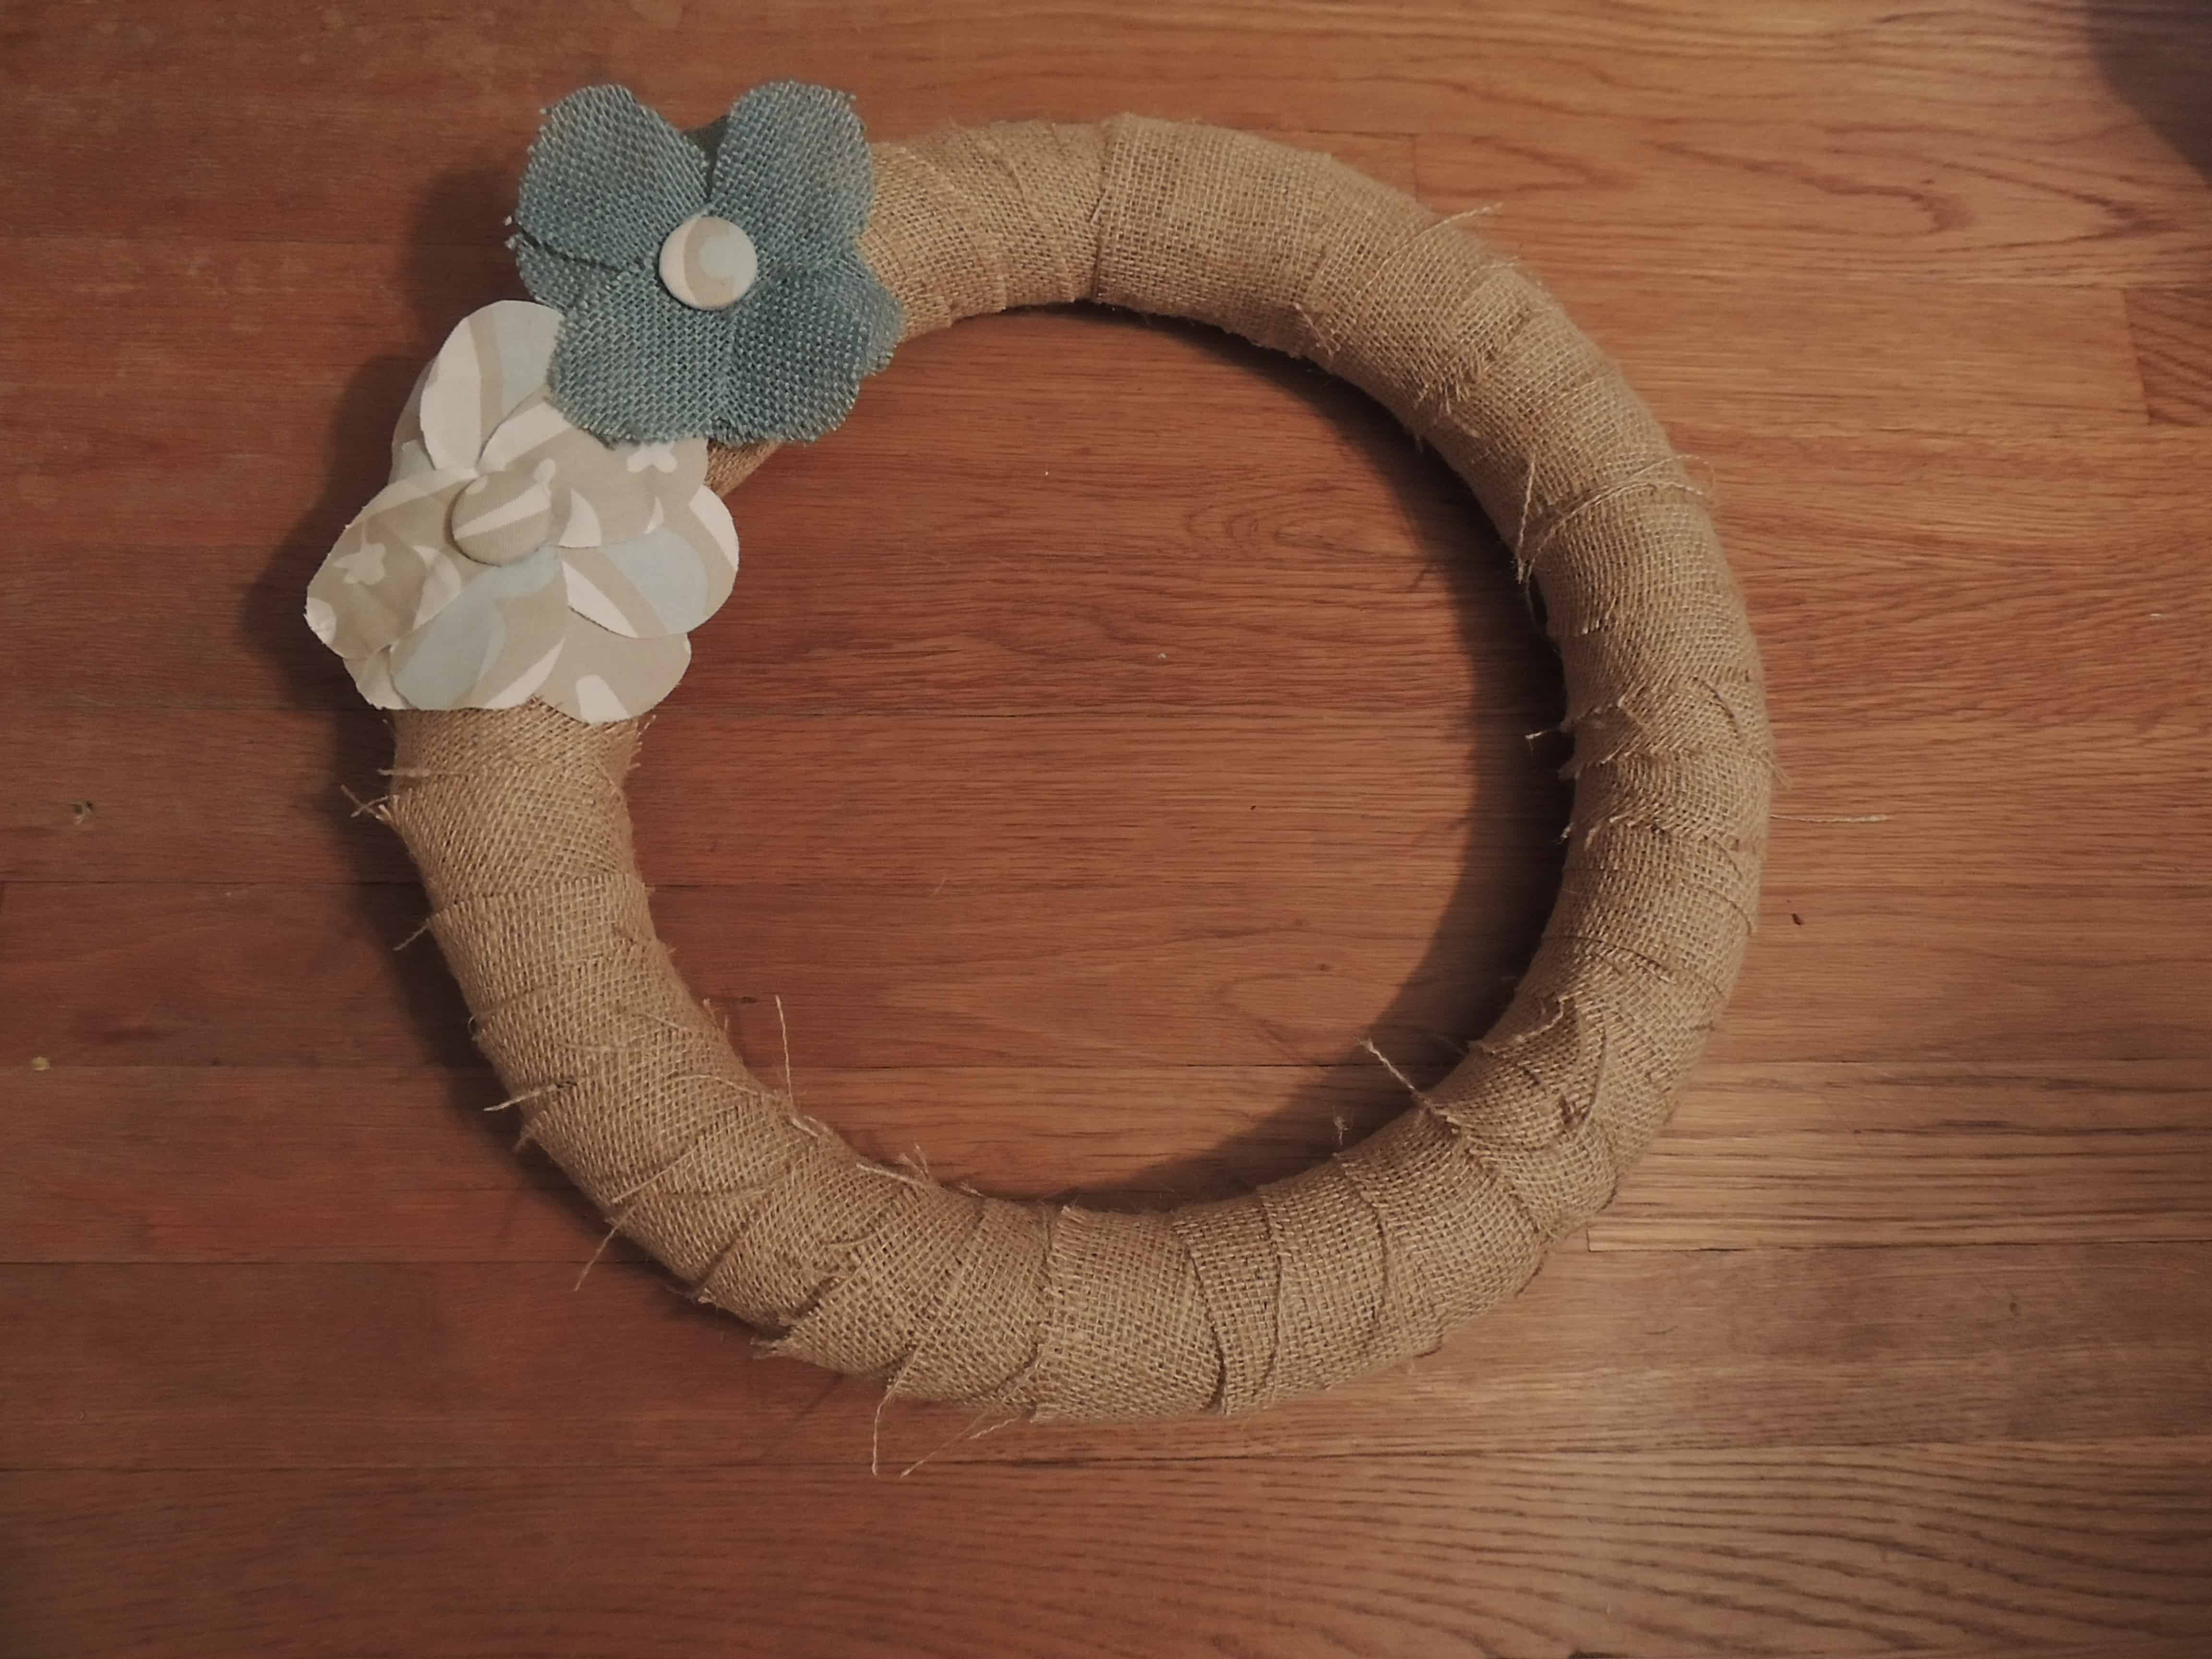 Add as many burlap flowers as you'd like to your diy burlap wreath